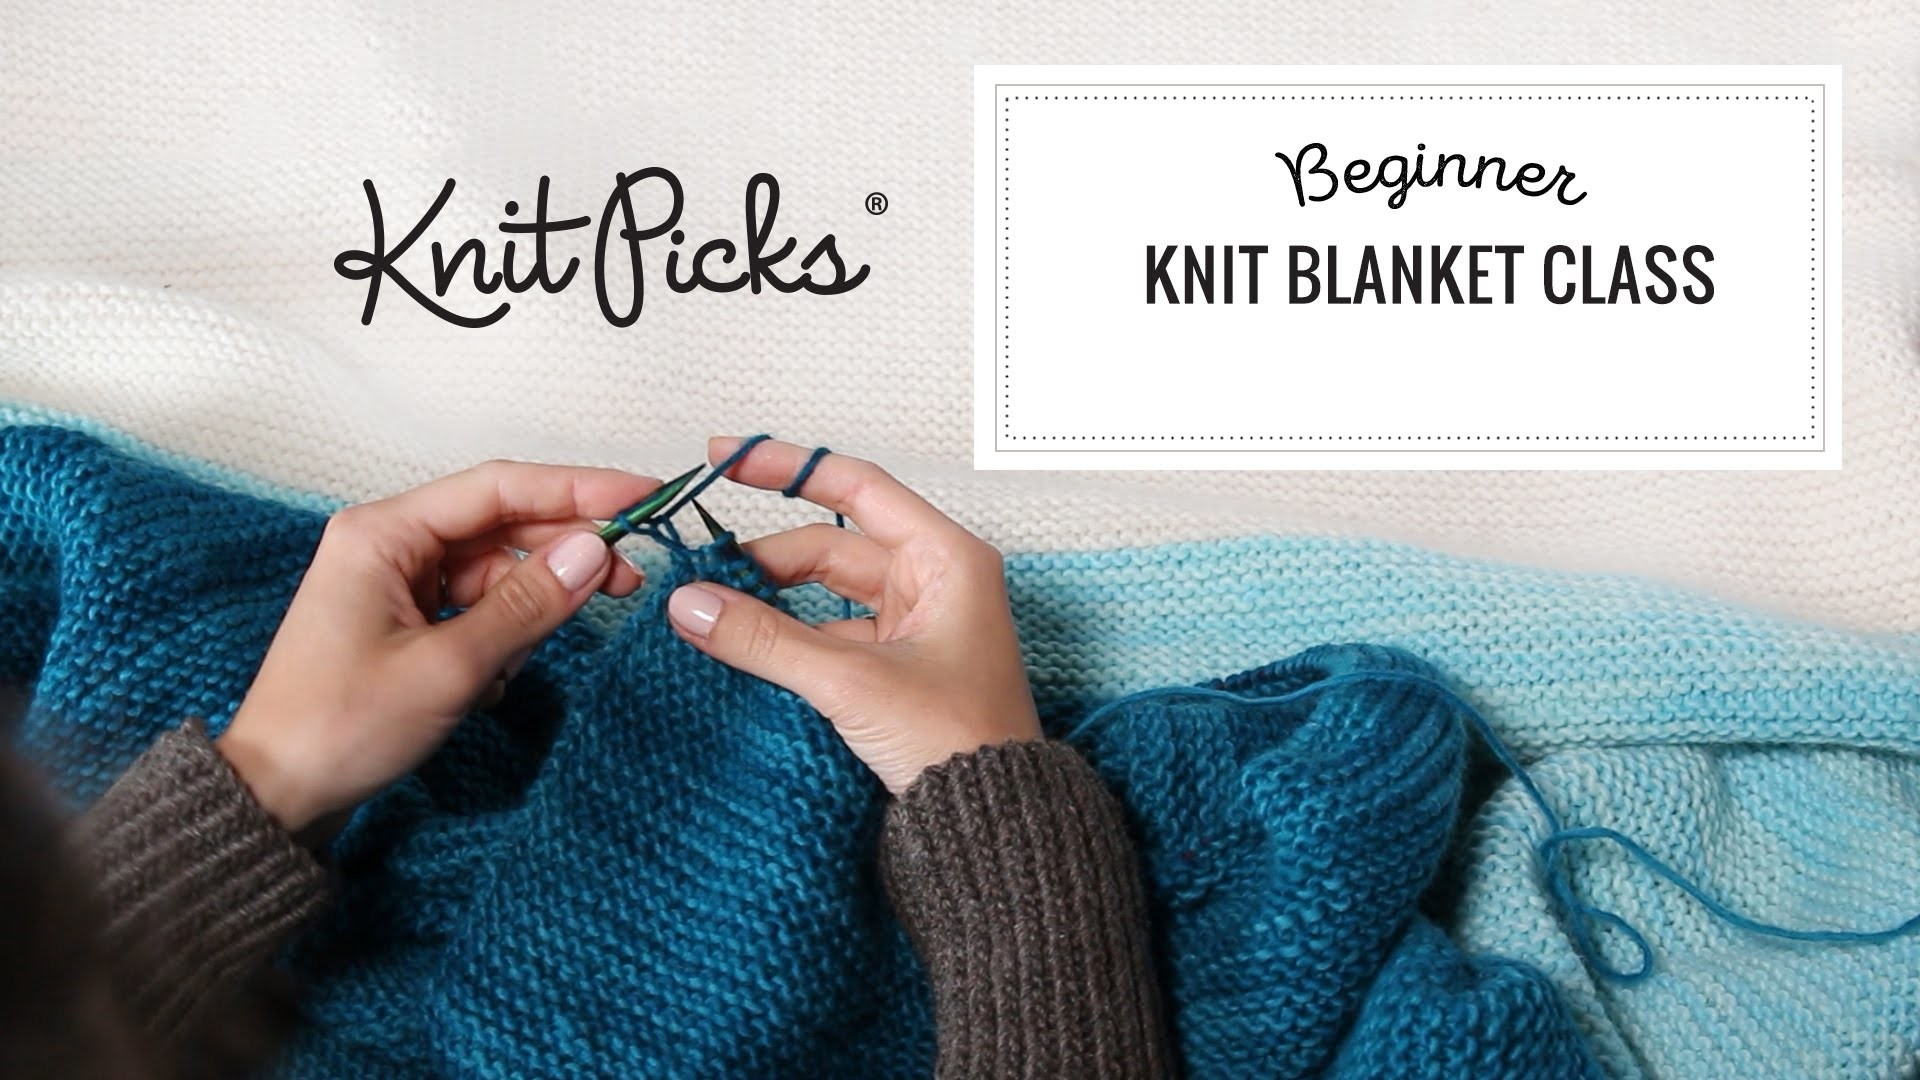 Beginner Knit Blanket Class, Part 8: Binding Off Your Last Stitches